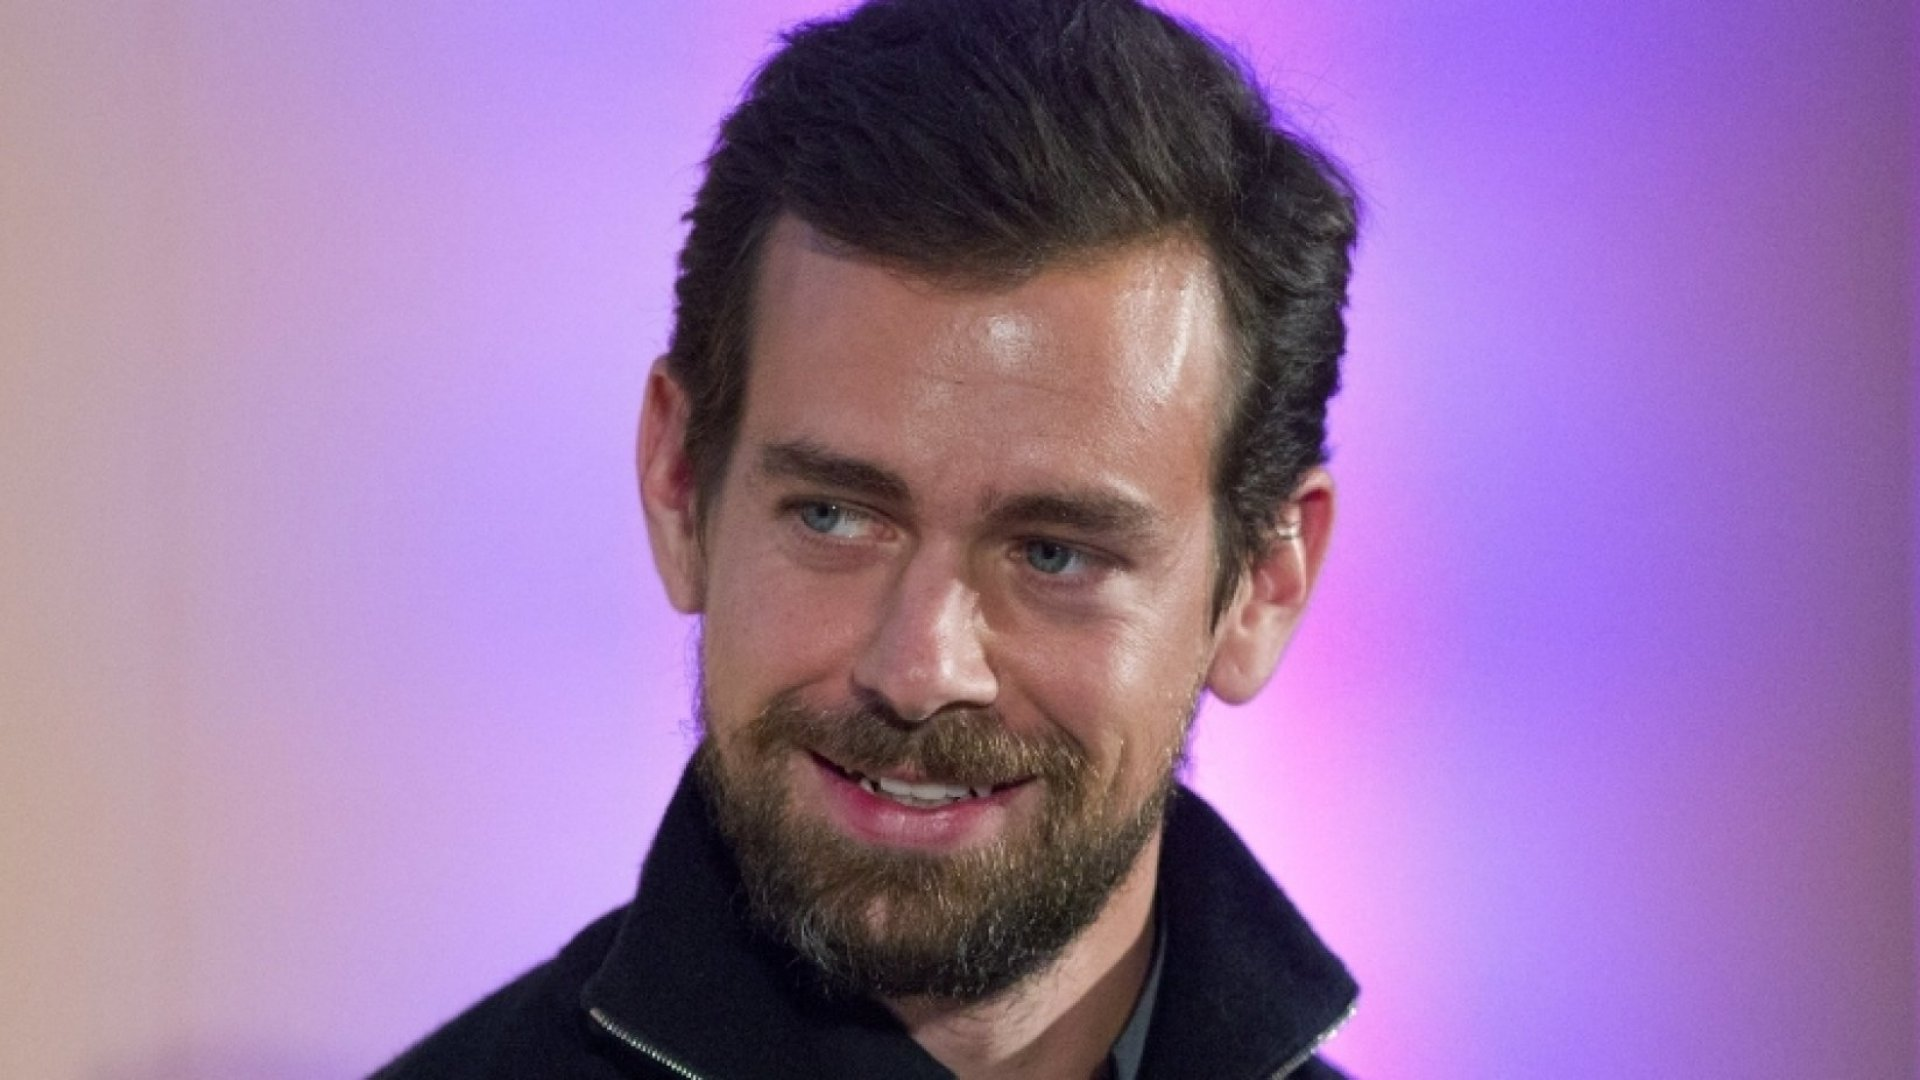 5 Powerful Success Habits From Twitter Co-Founder Jack Dorsey